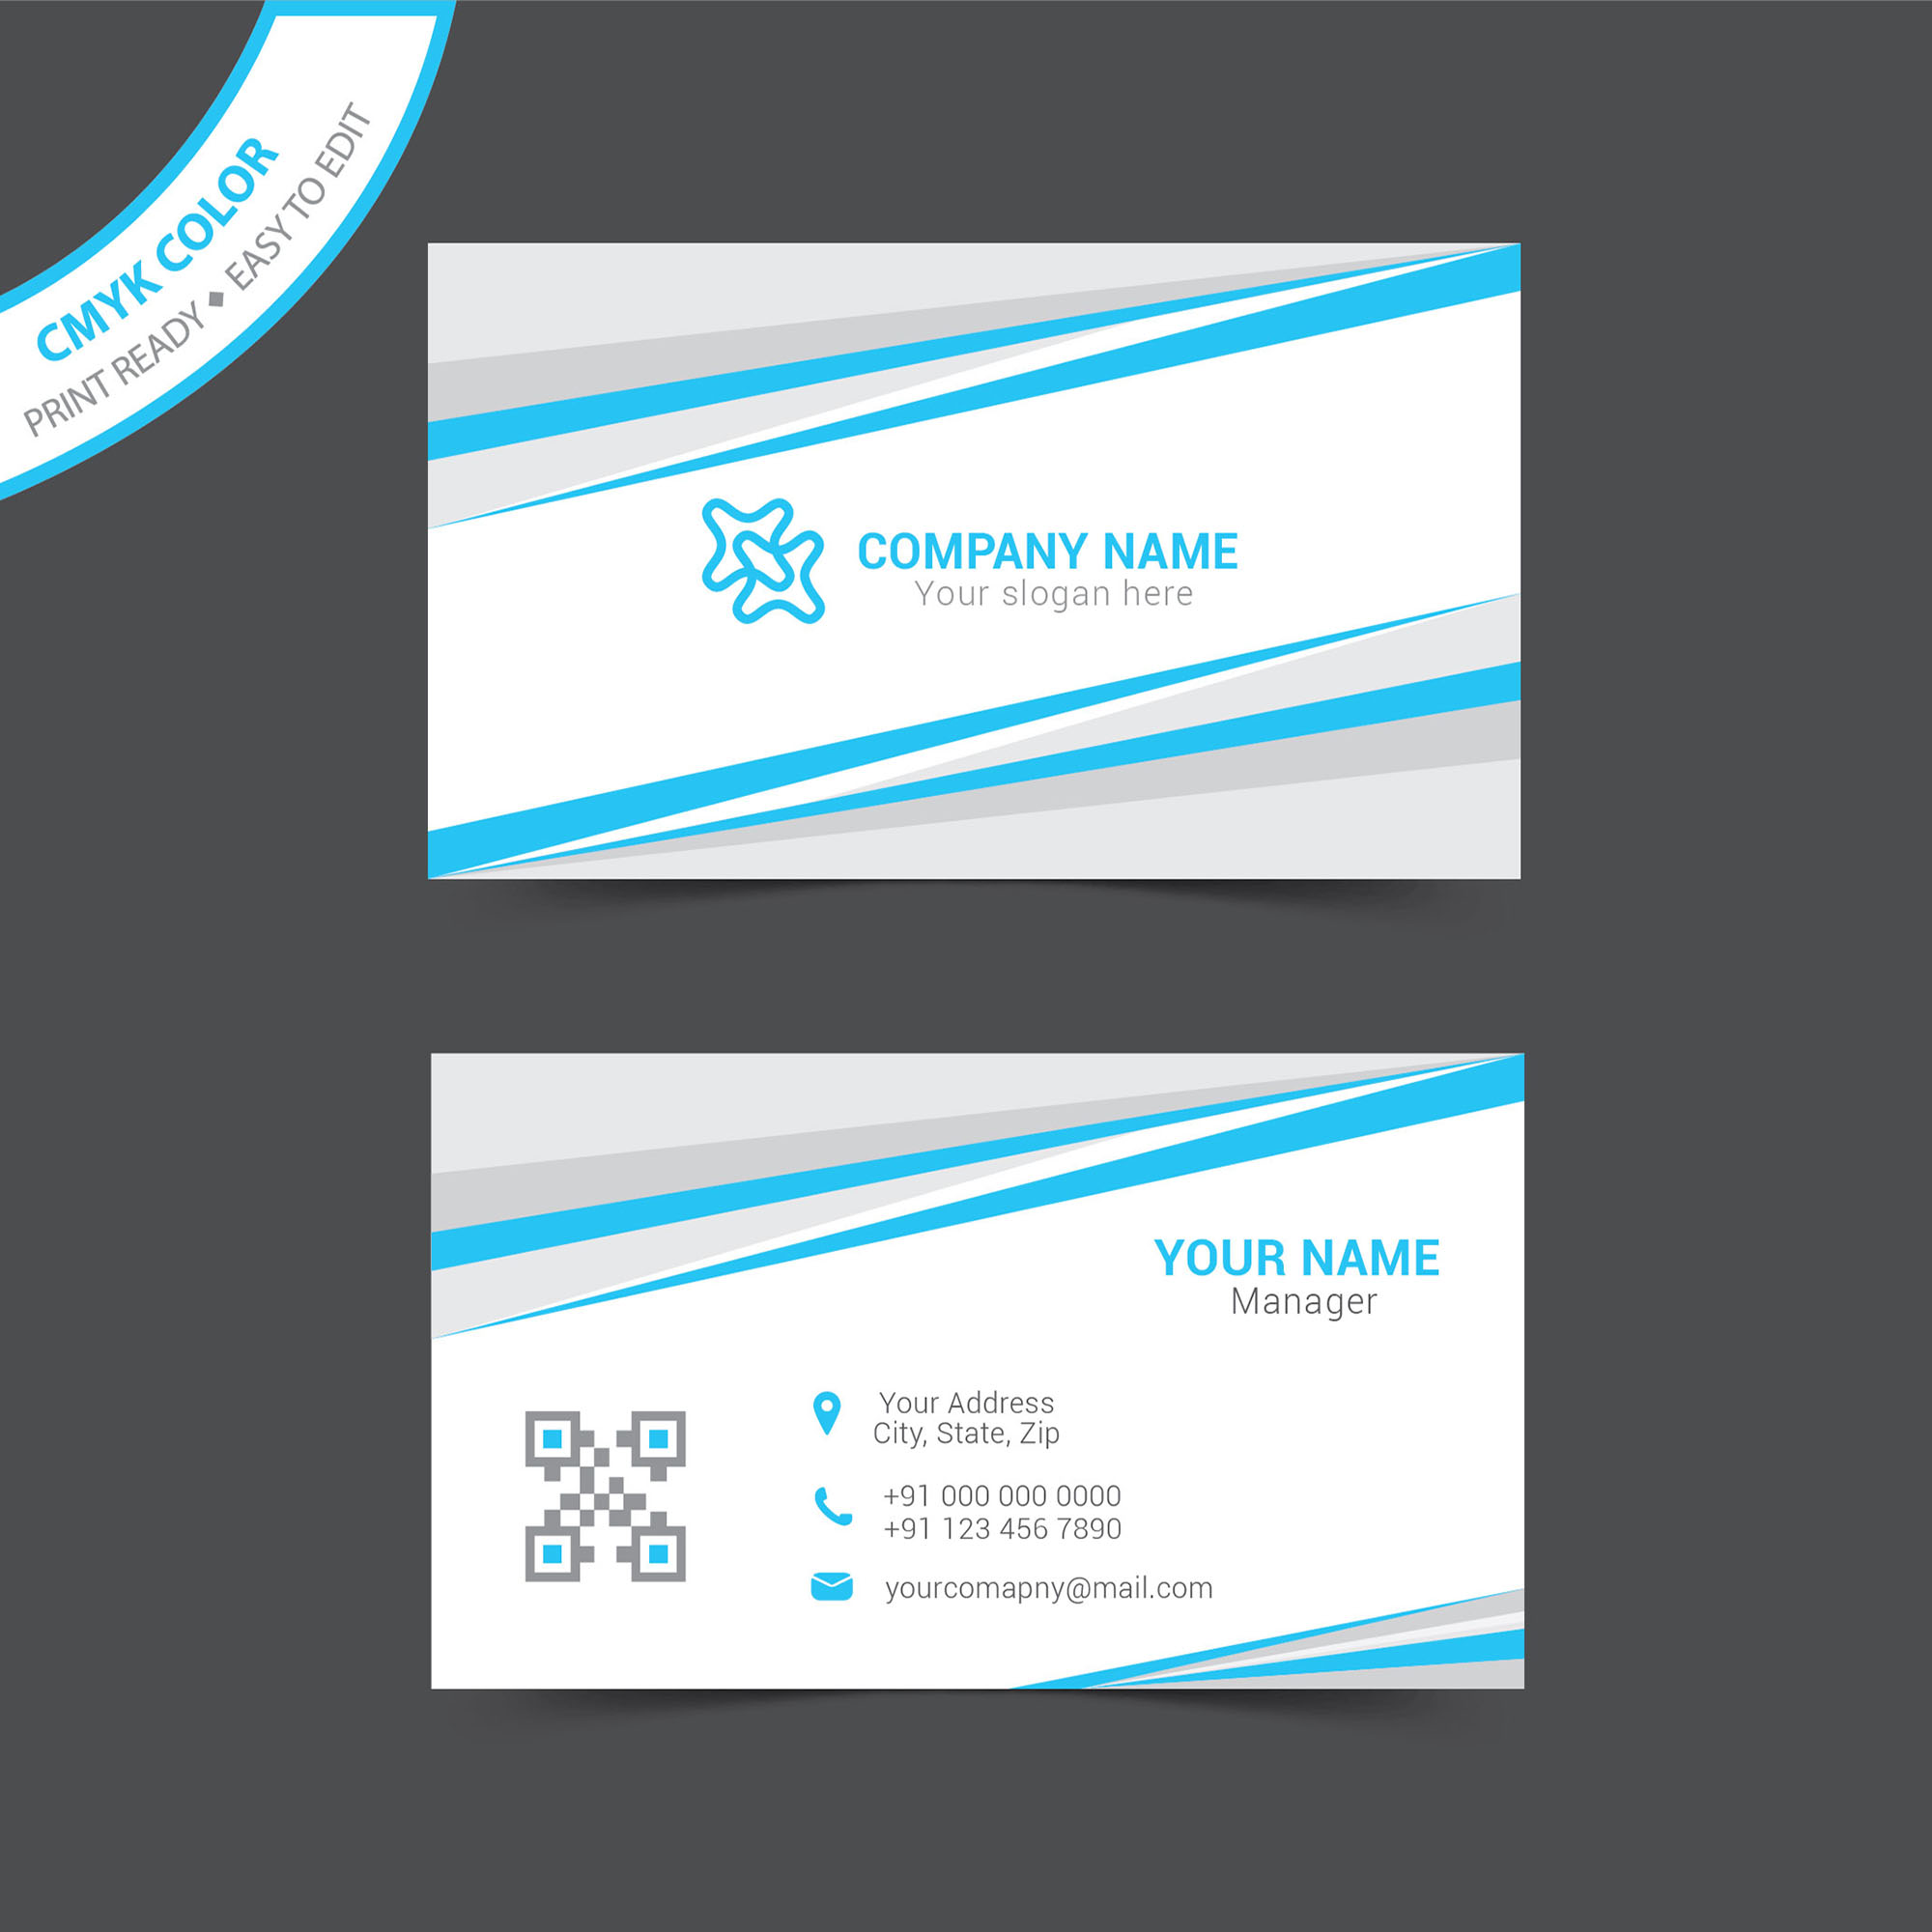 Simple business card template free download wisxi business card business cards business card design business card template design templates cheaphphosting